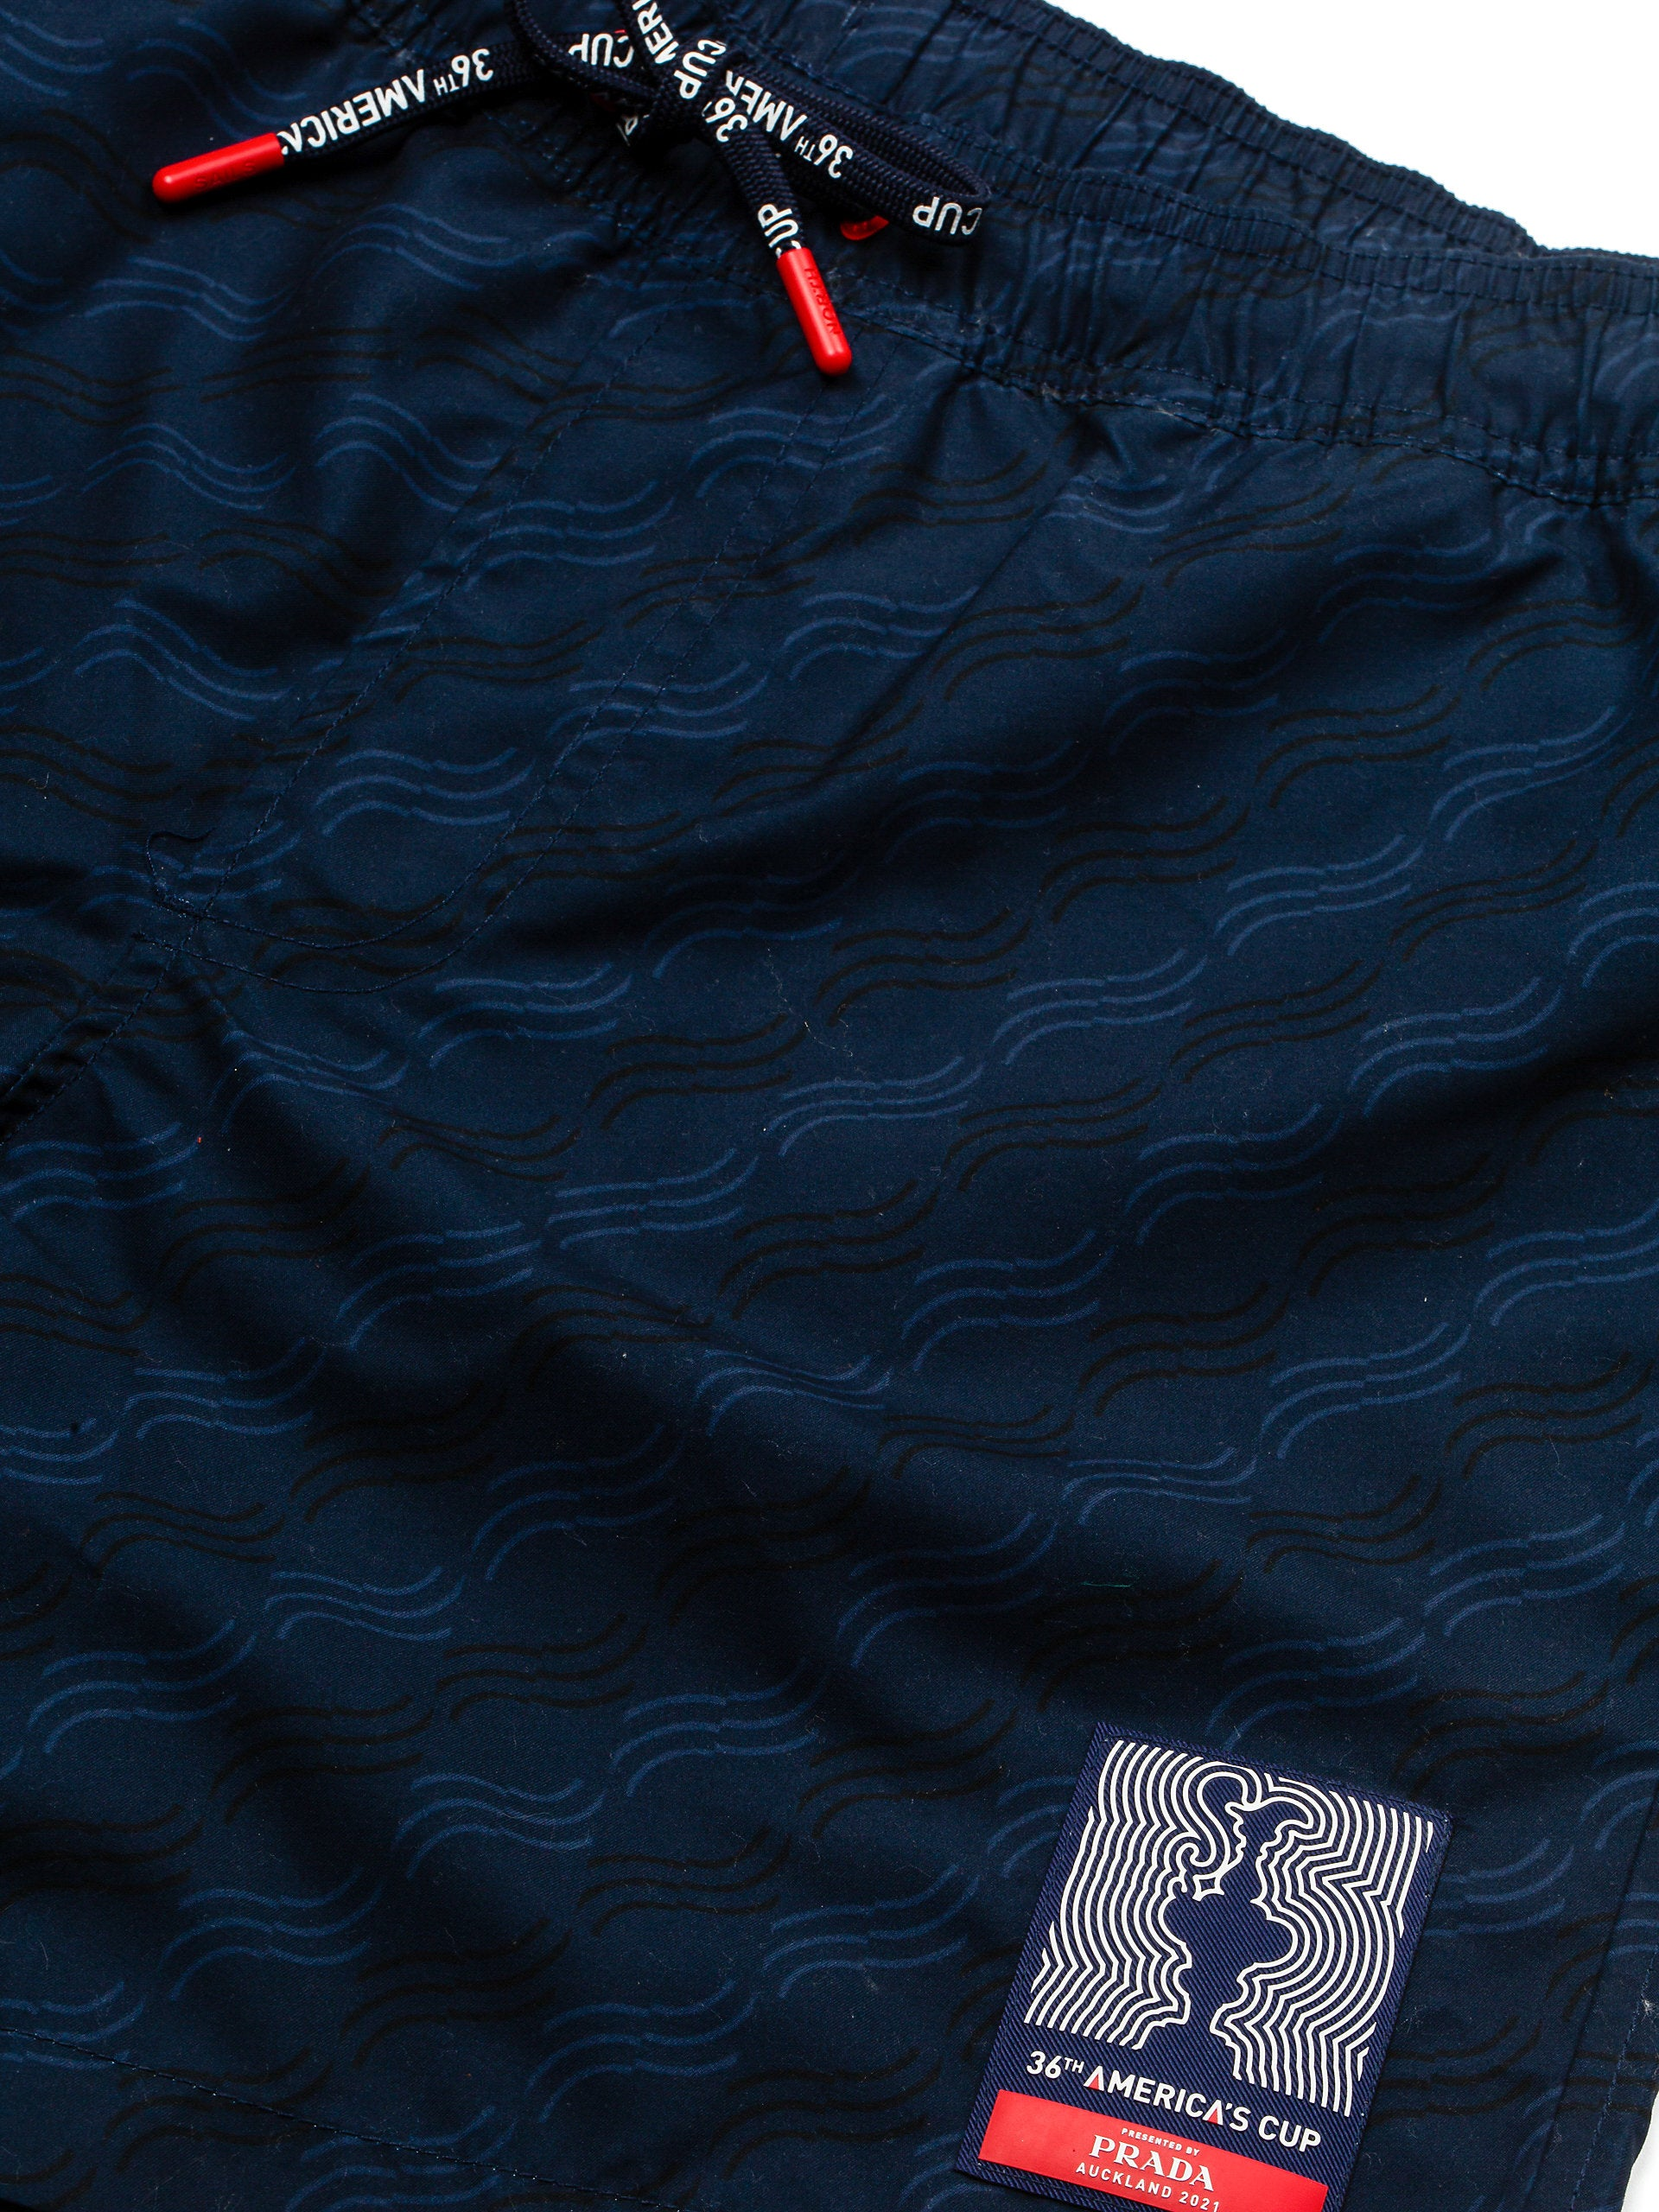 North Sails America's Cup Presented by PRADA Swim Shorts Navy 'Waves Print'